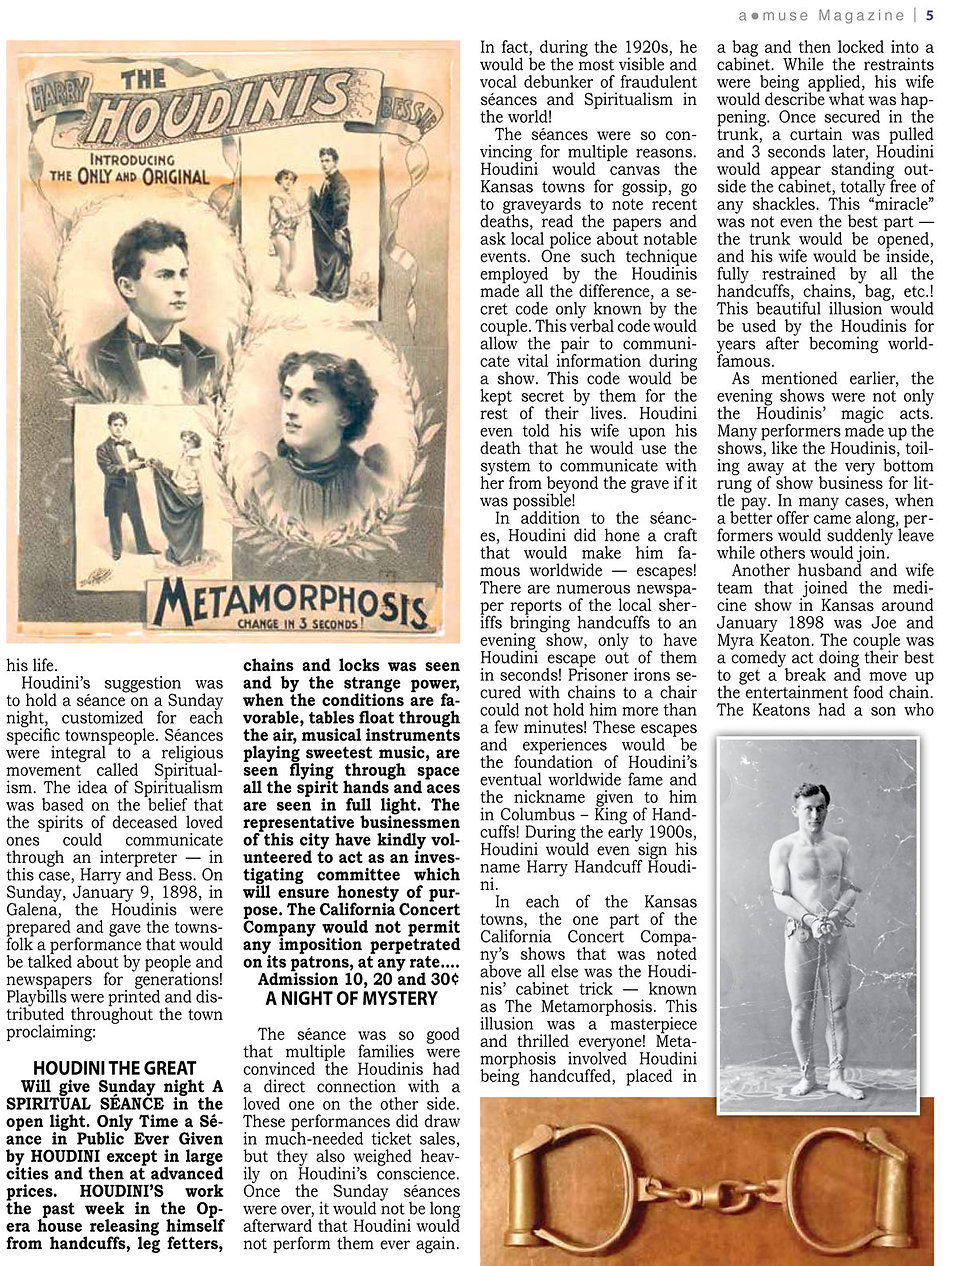 A_Muse-houdini-page-4.jpg